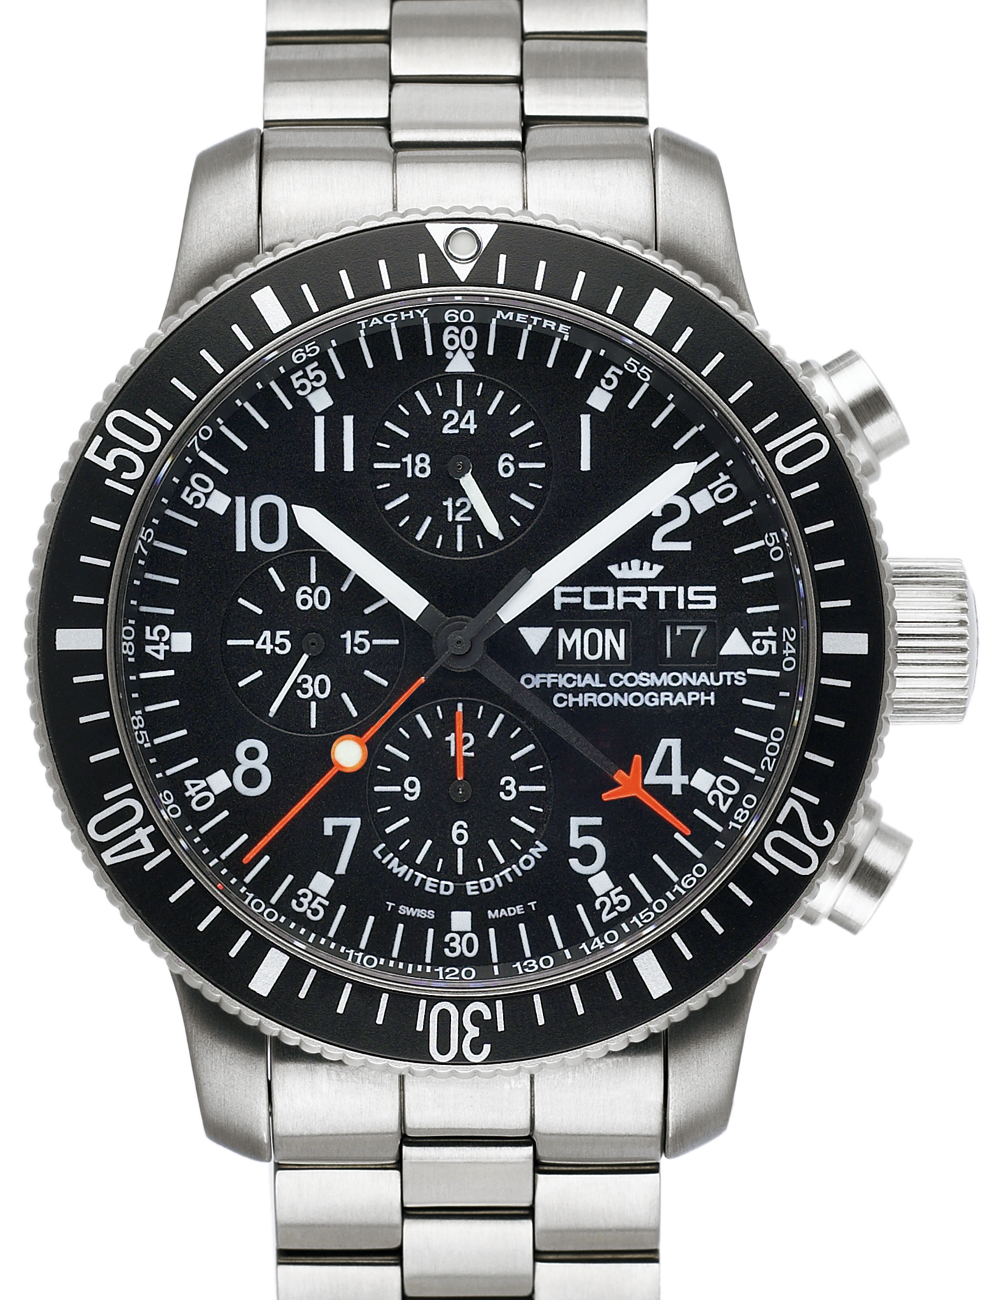 Titan Watches Models For Men With Price